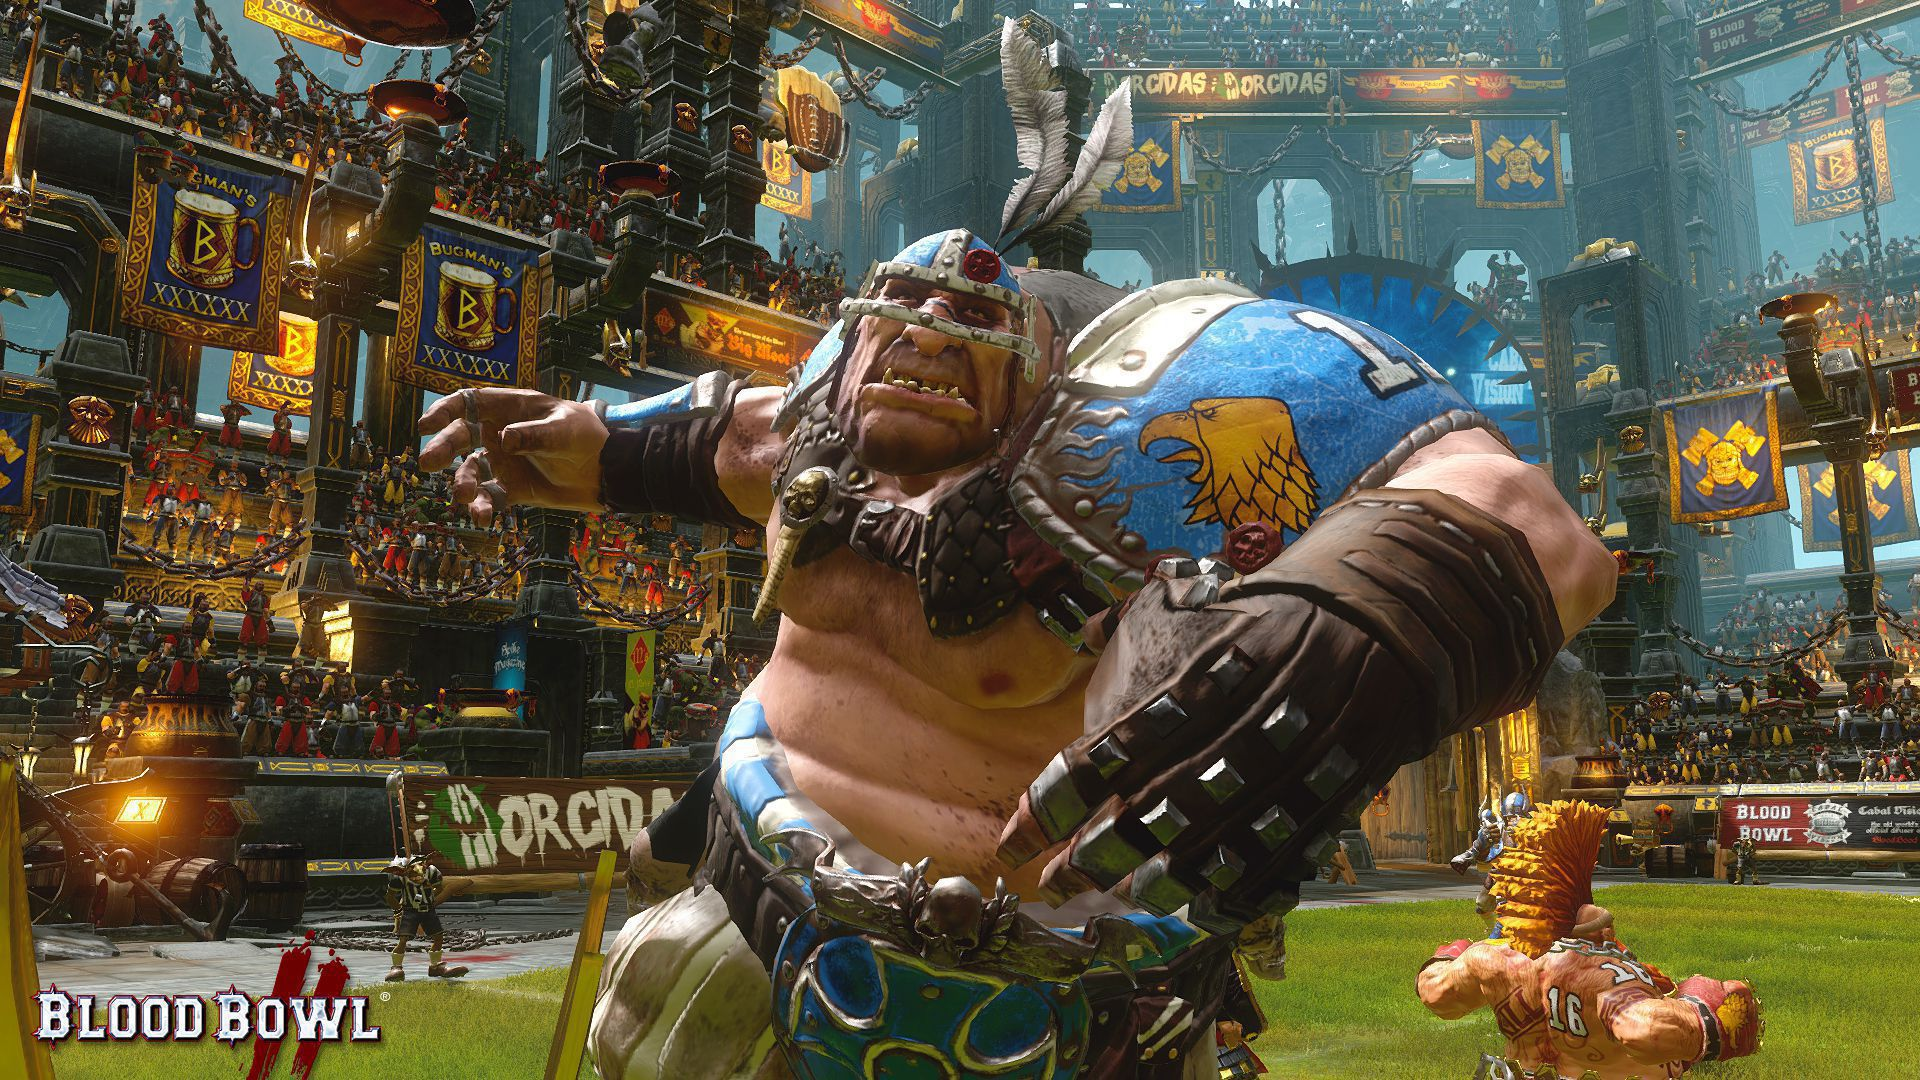 Blood Bowl HD Wallpaper